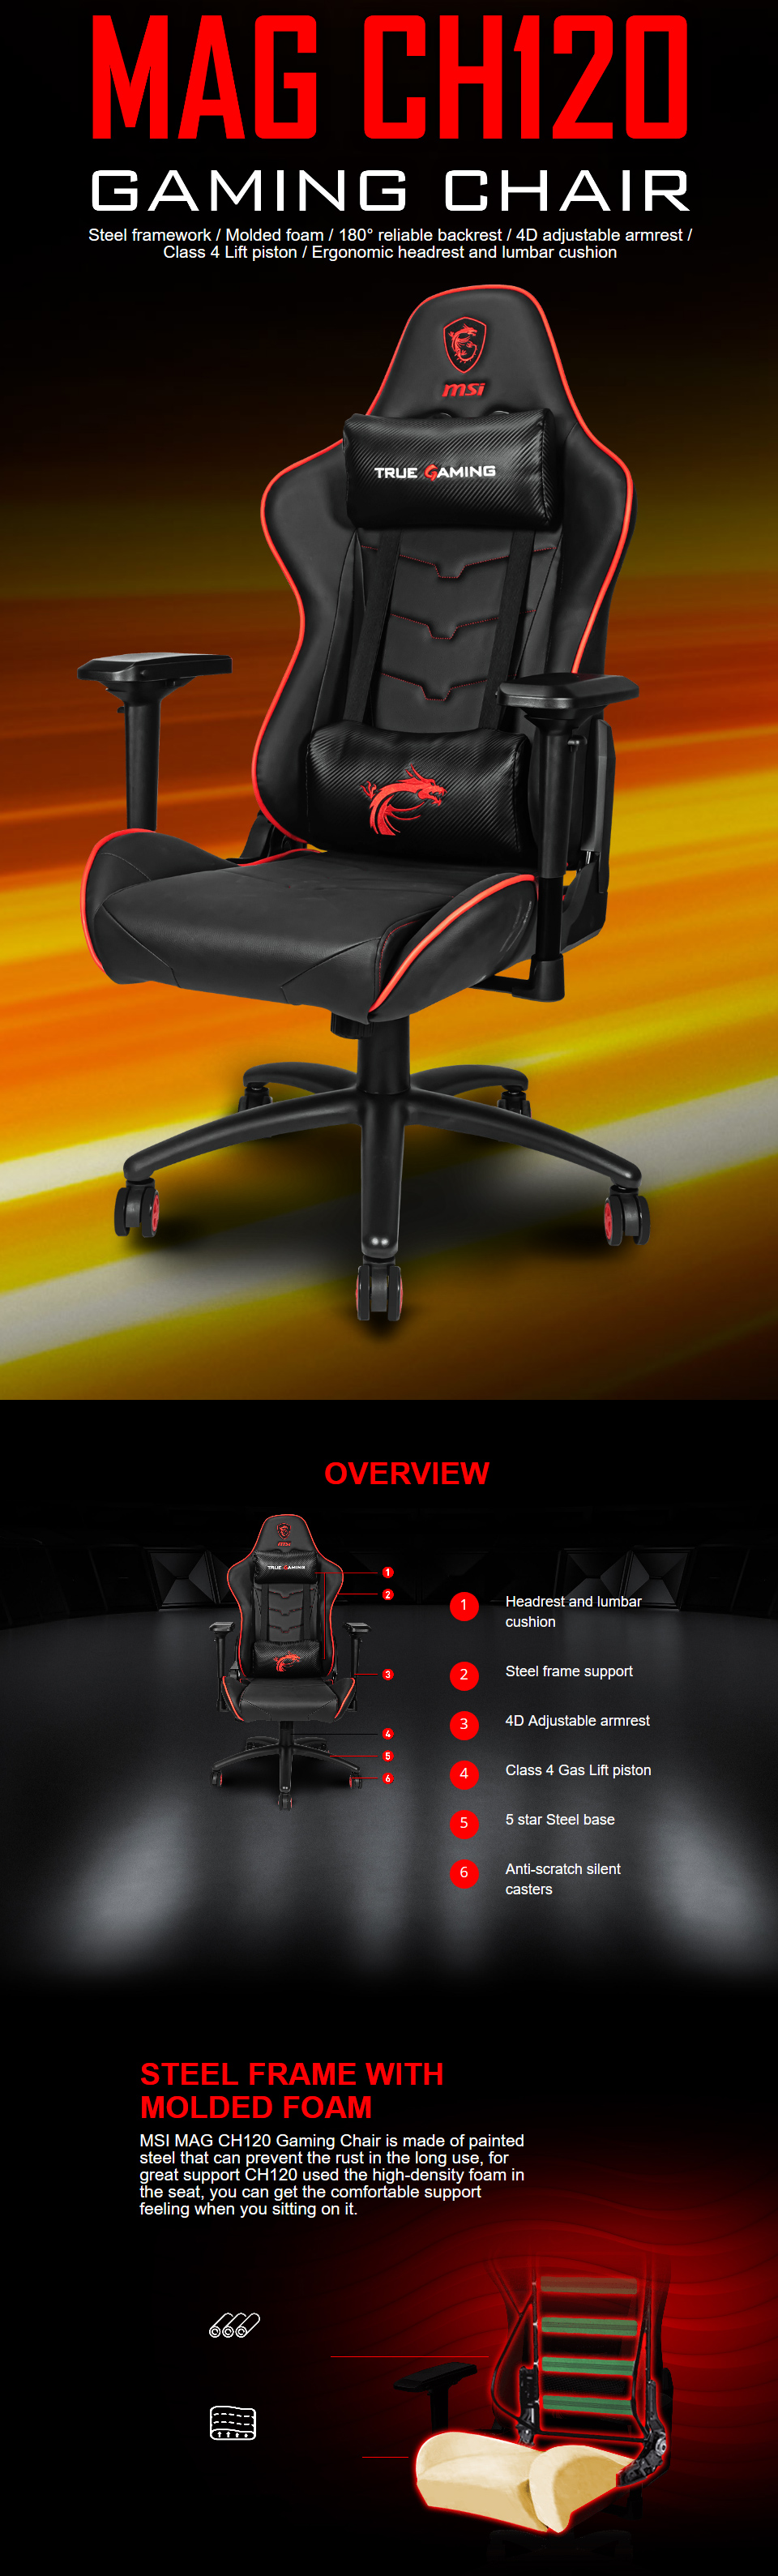 MSI MAG-CH120X Gaming Chair features